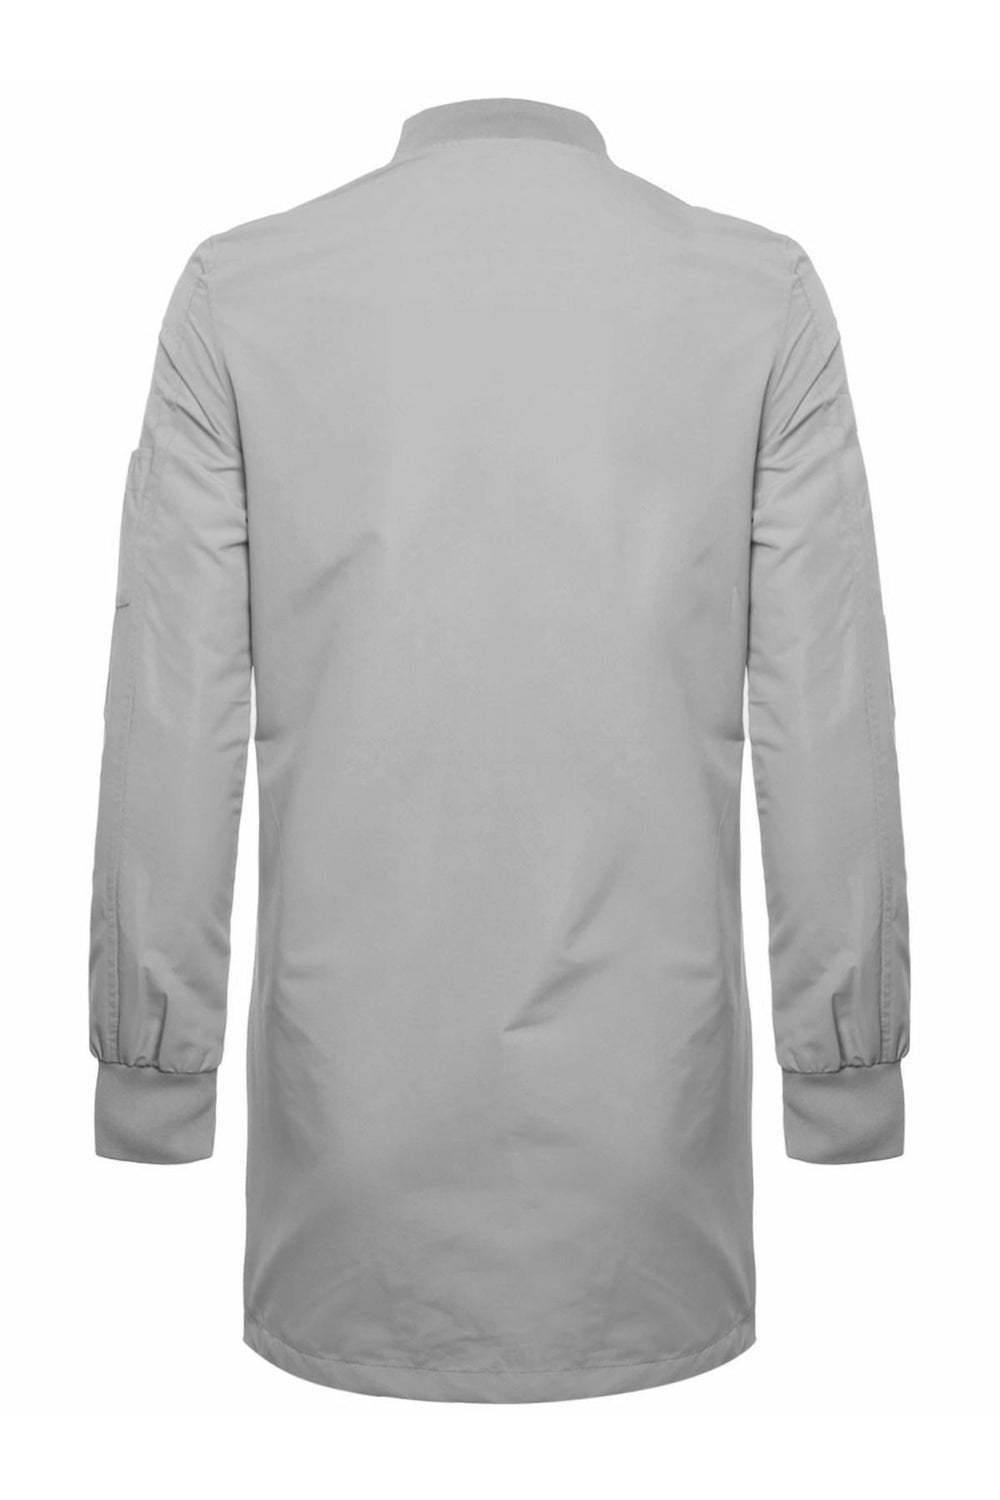 Jackets - Cobra II Longline Lightweight MA1 Grey